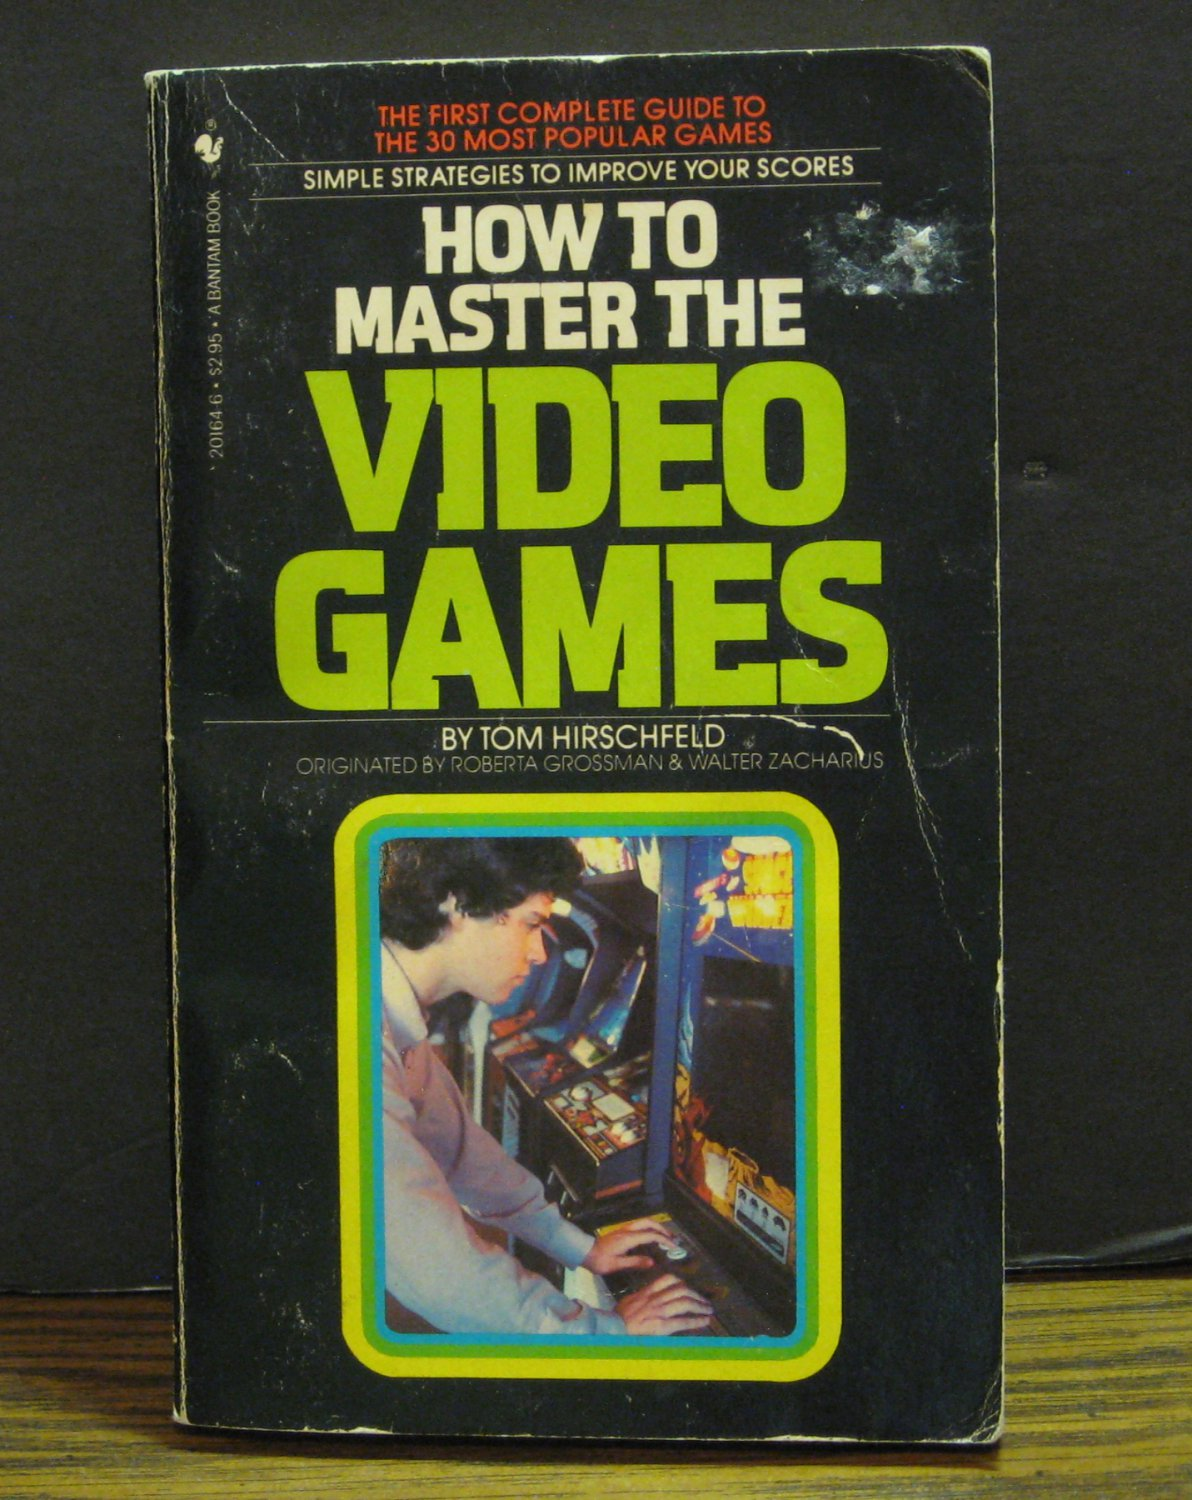 How to Master the Video Games - 30 Game Arcade Strategy Guide - 1981 Vintage